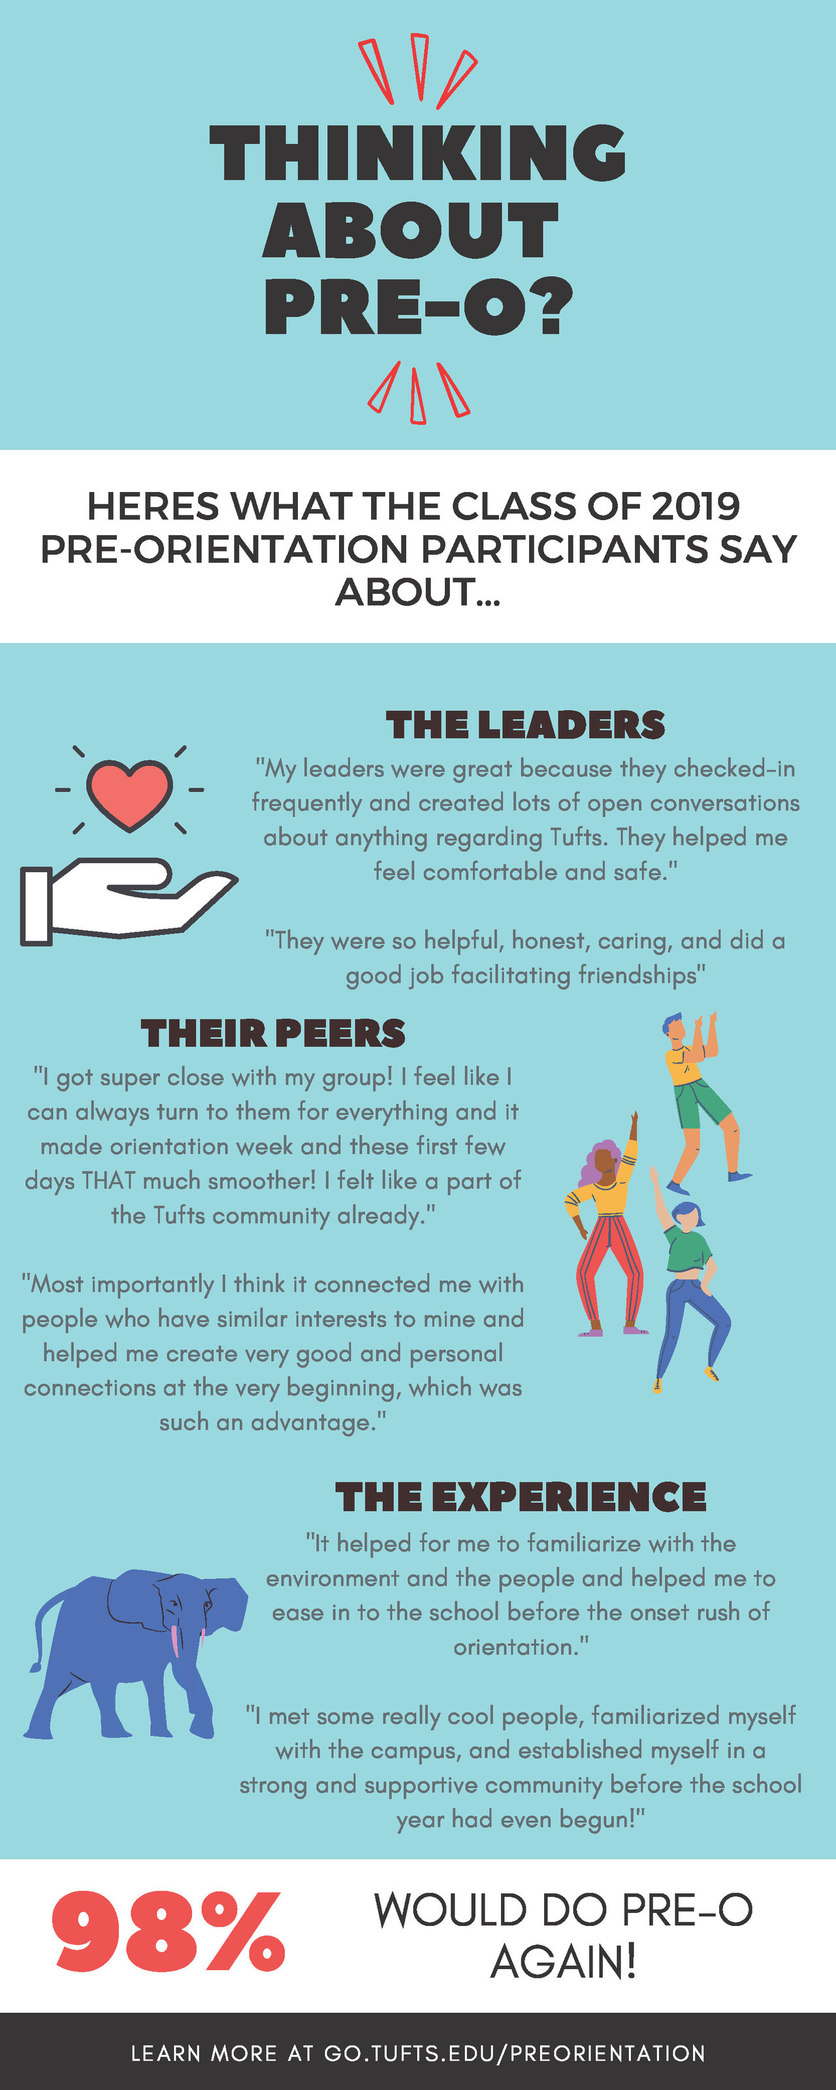 Leader quotes. 98% of students say they would do Pre-Orientation again! Learn more at go.tufts.edu/preorientation.